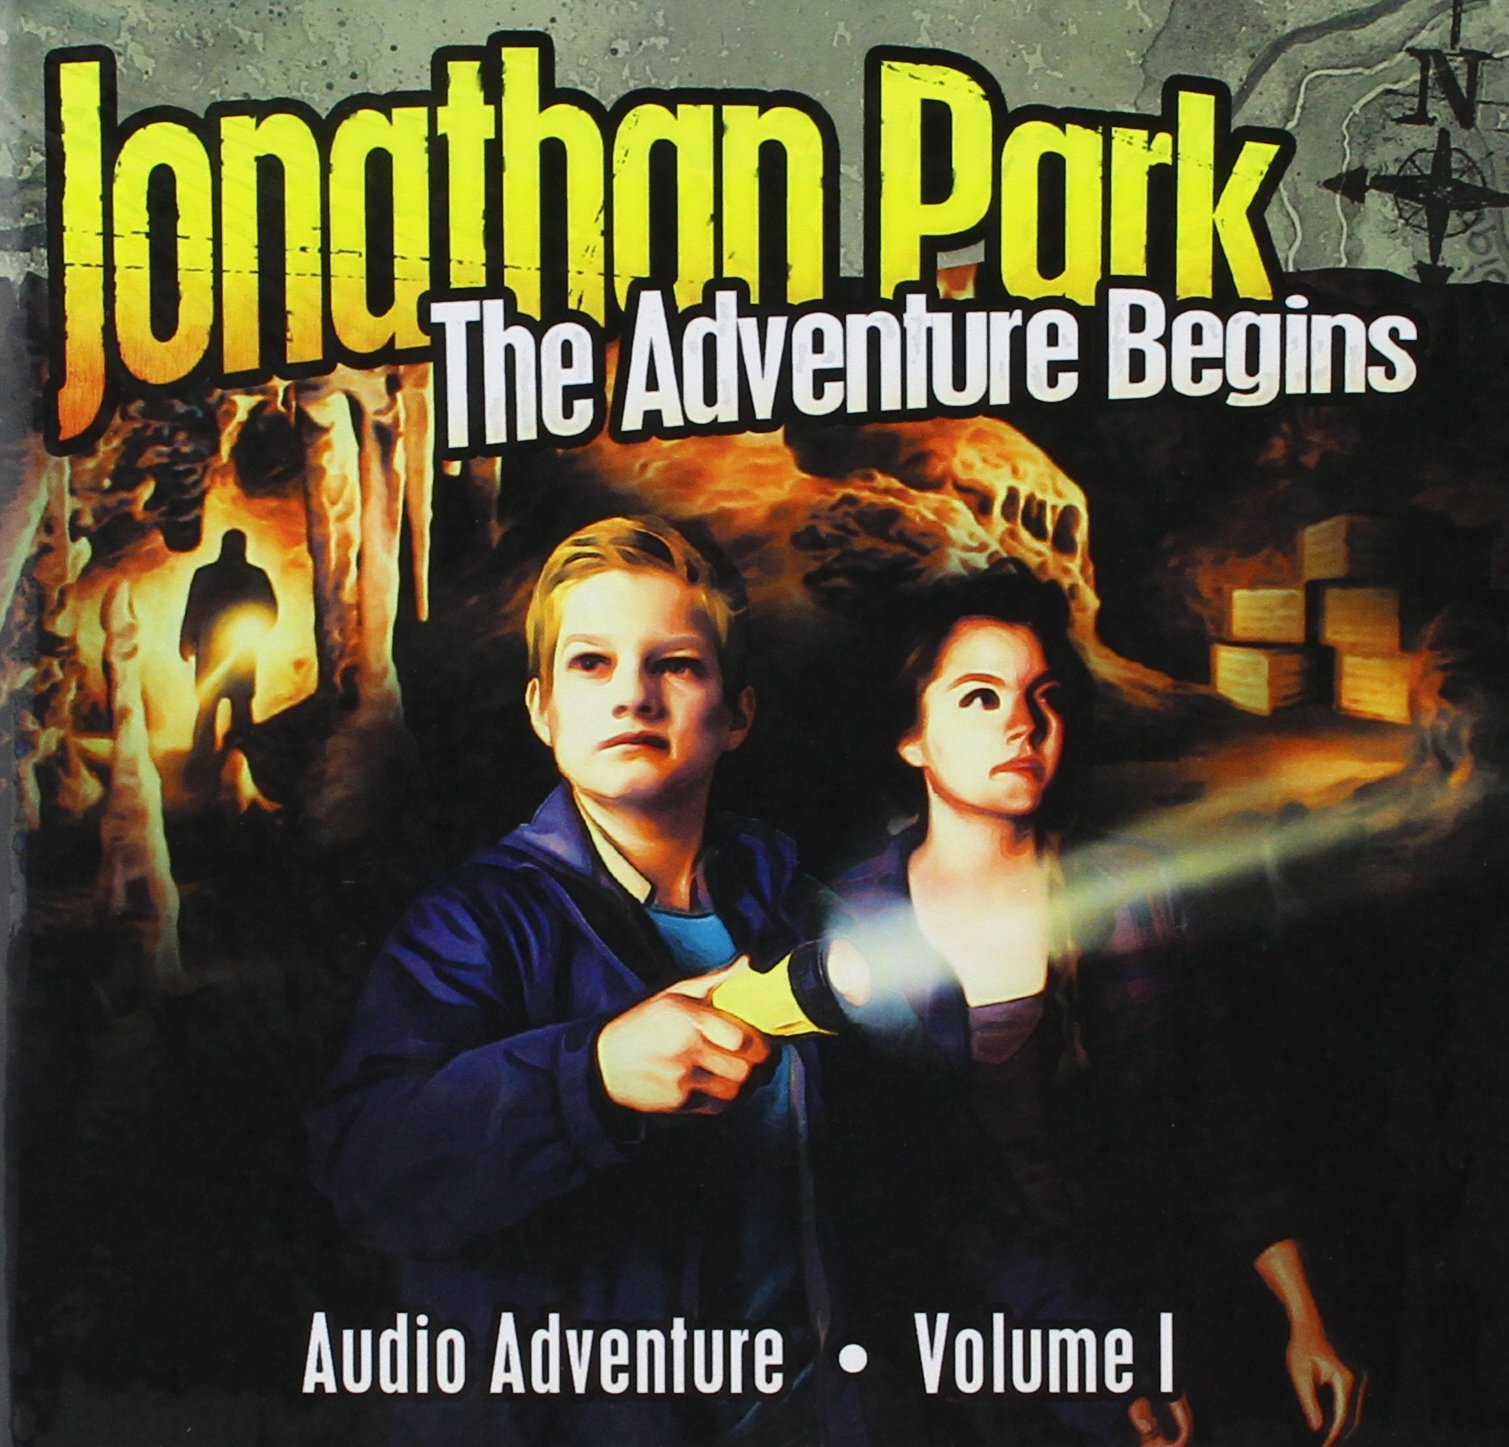 Jonathan Park Volume 1: The Adventure Begins: Creation Works LLC:  9781941510087: Amazon.com: Books